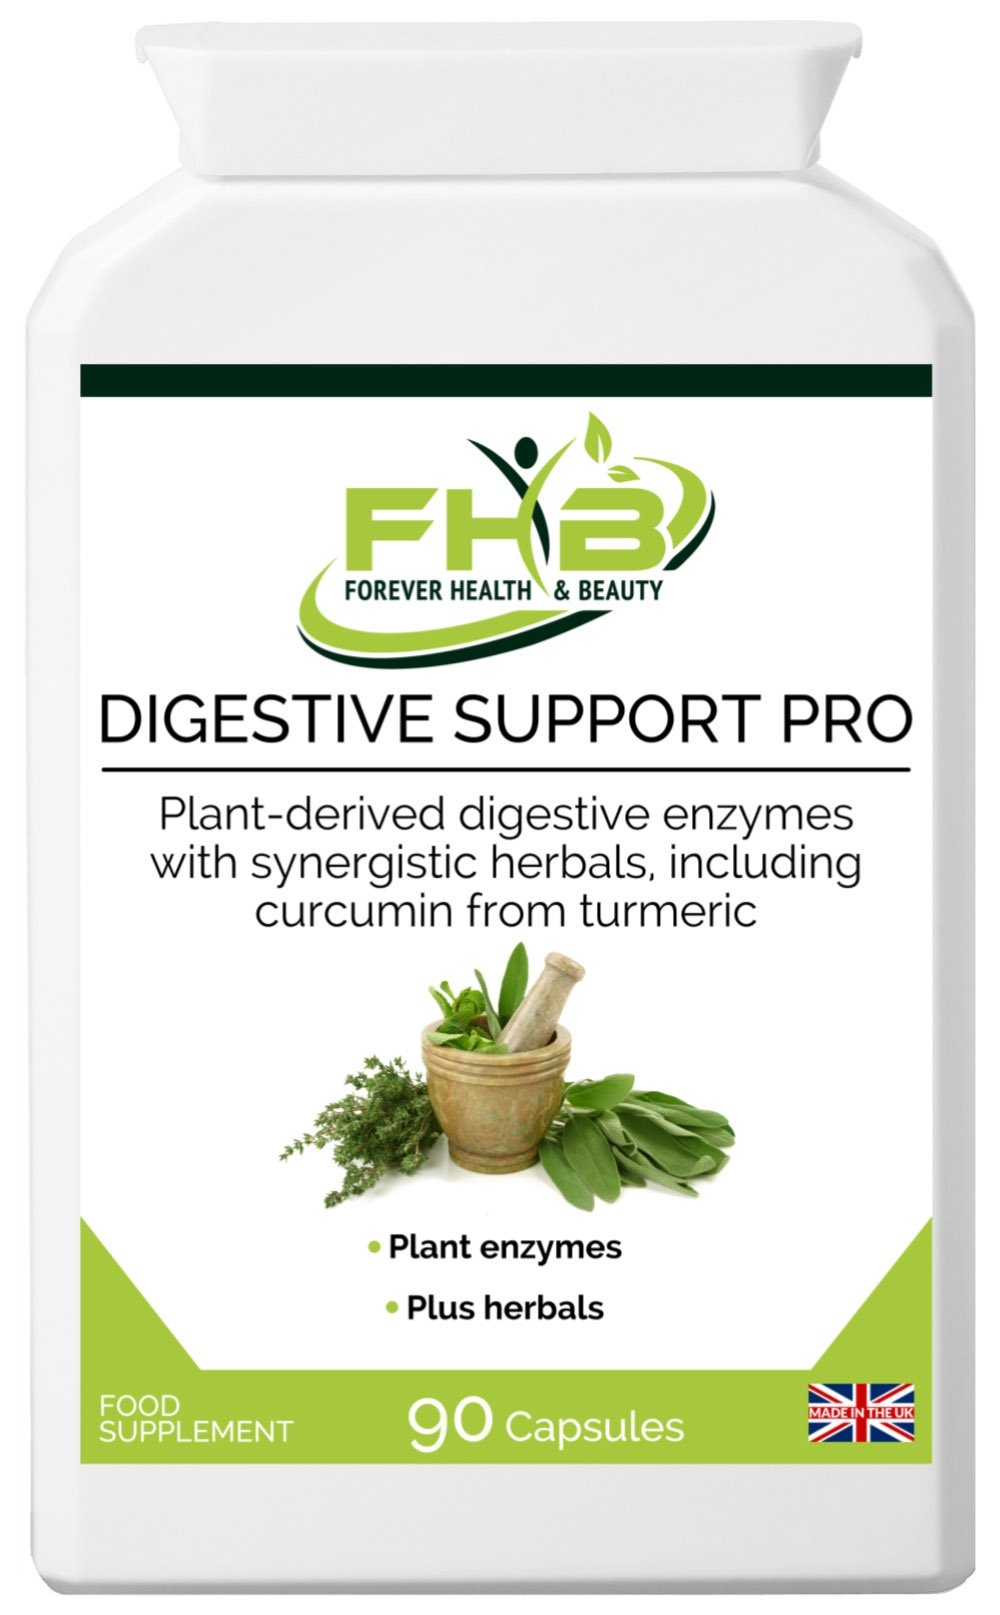 digestive-support-pro-herbal-digestion-supplement